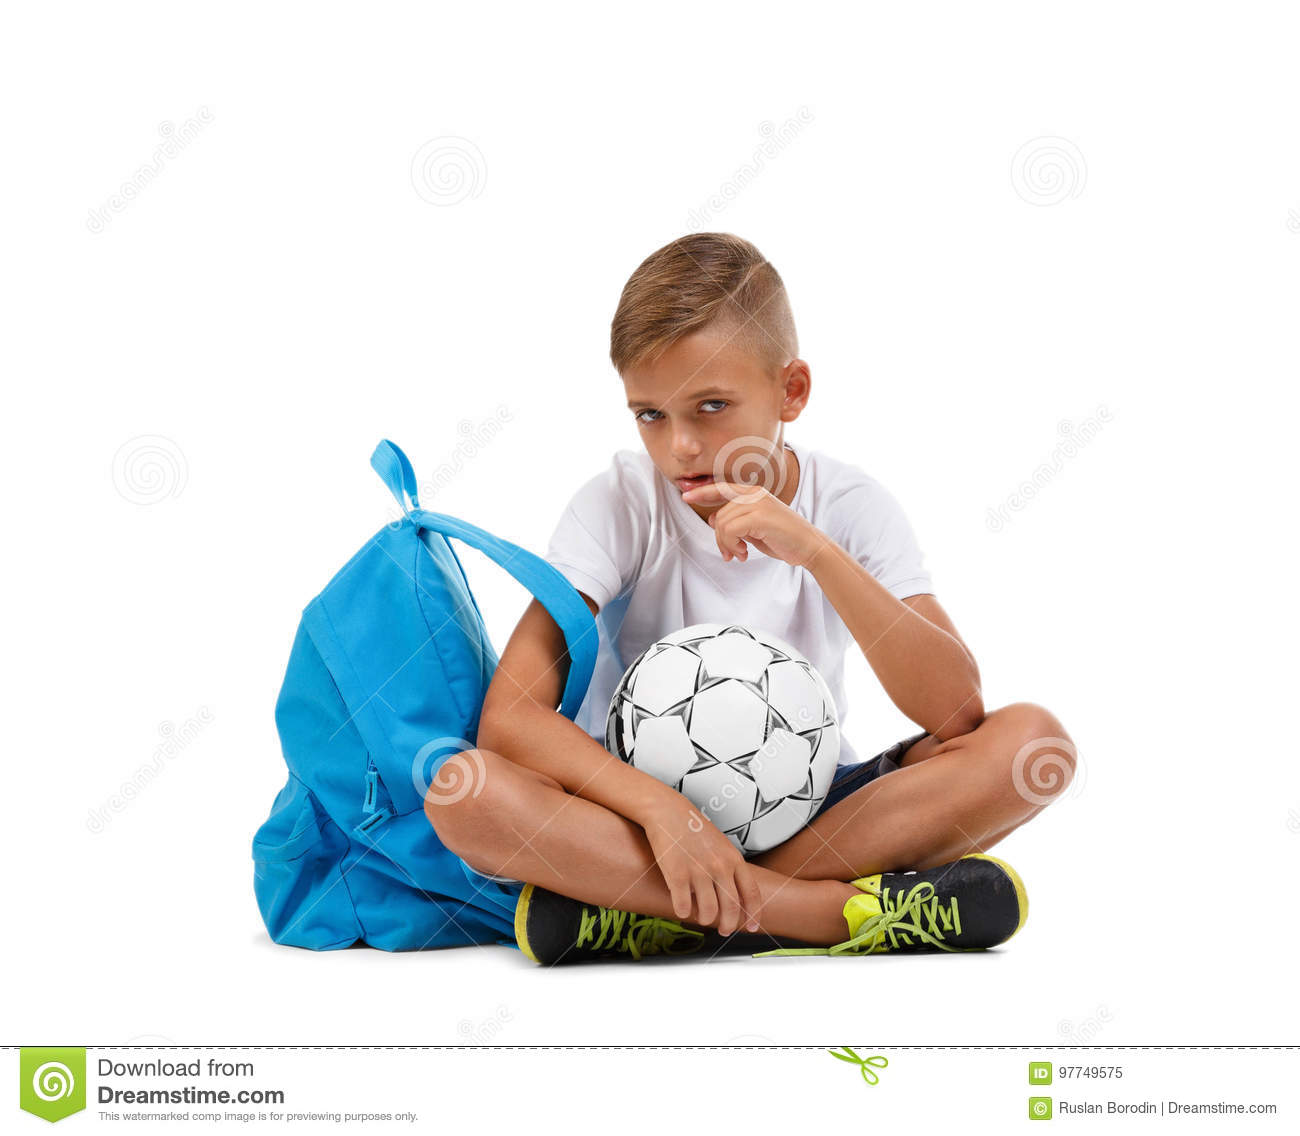 A meditative boy sitting on the ground in the lotus position. A kid with soccer ball isolated on a white background.